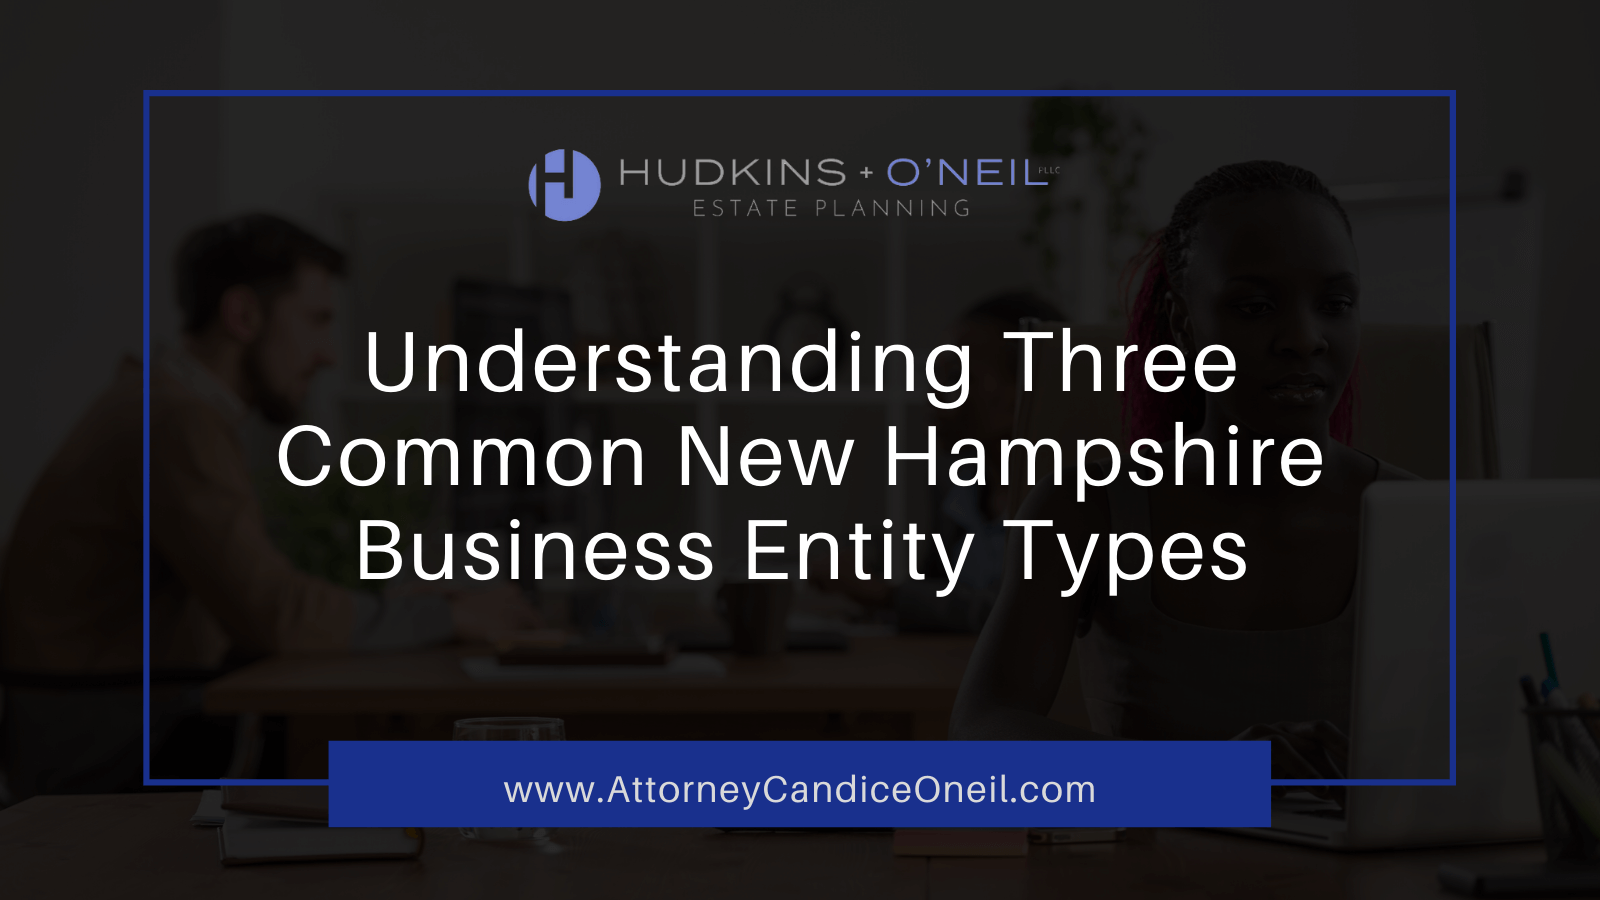 Understanding 3 Common New Hampshire Business Entity Types